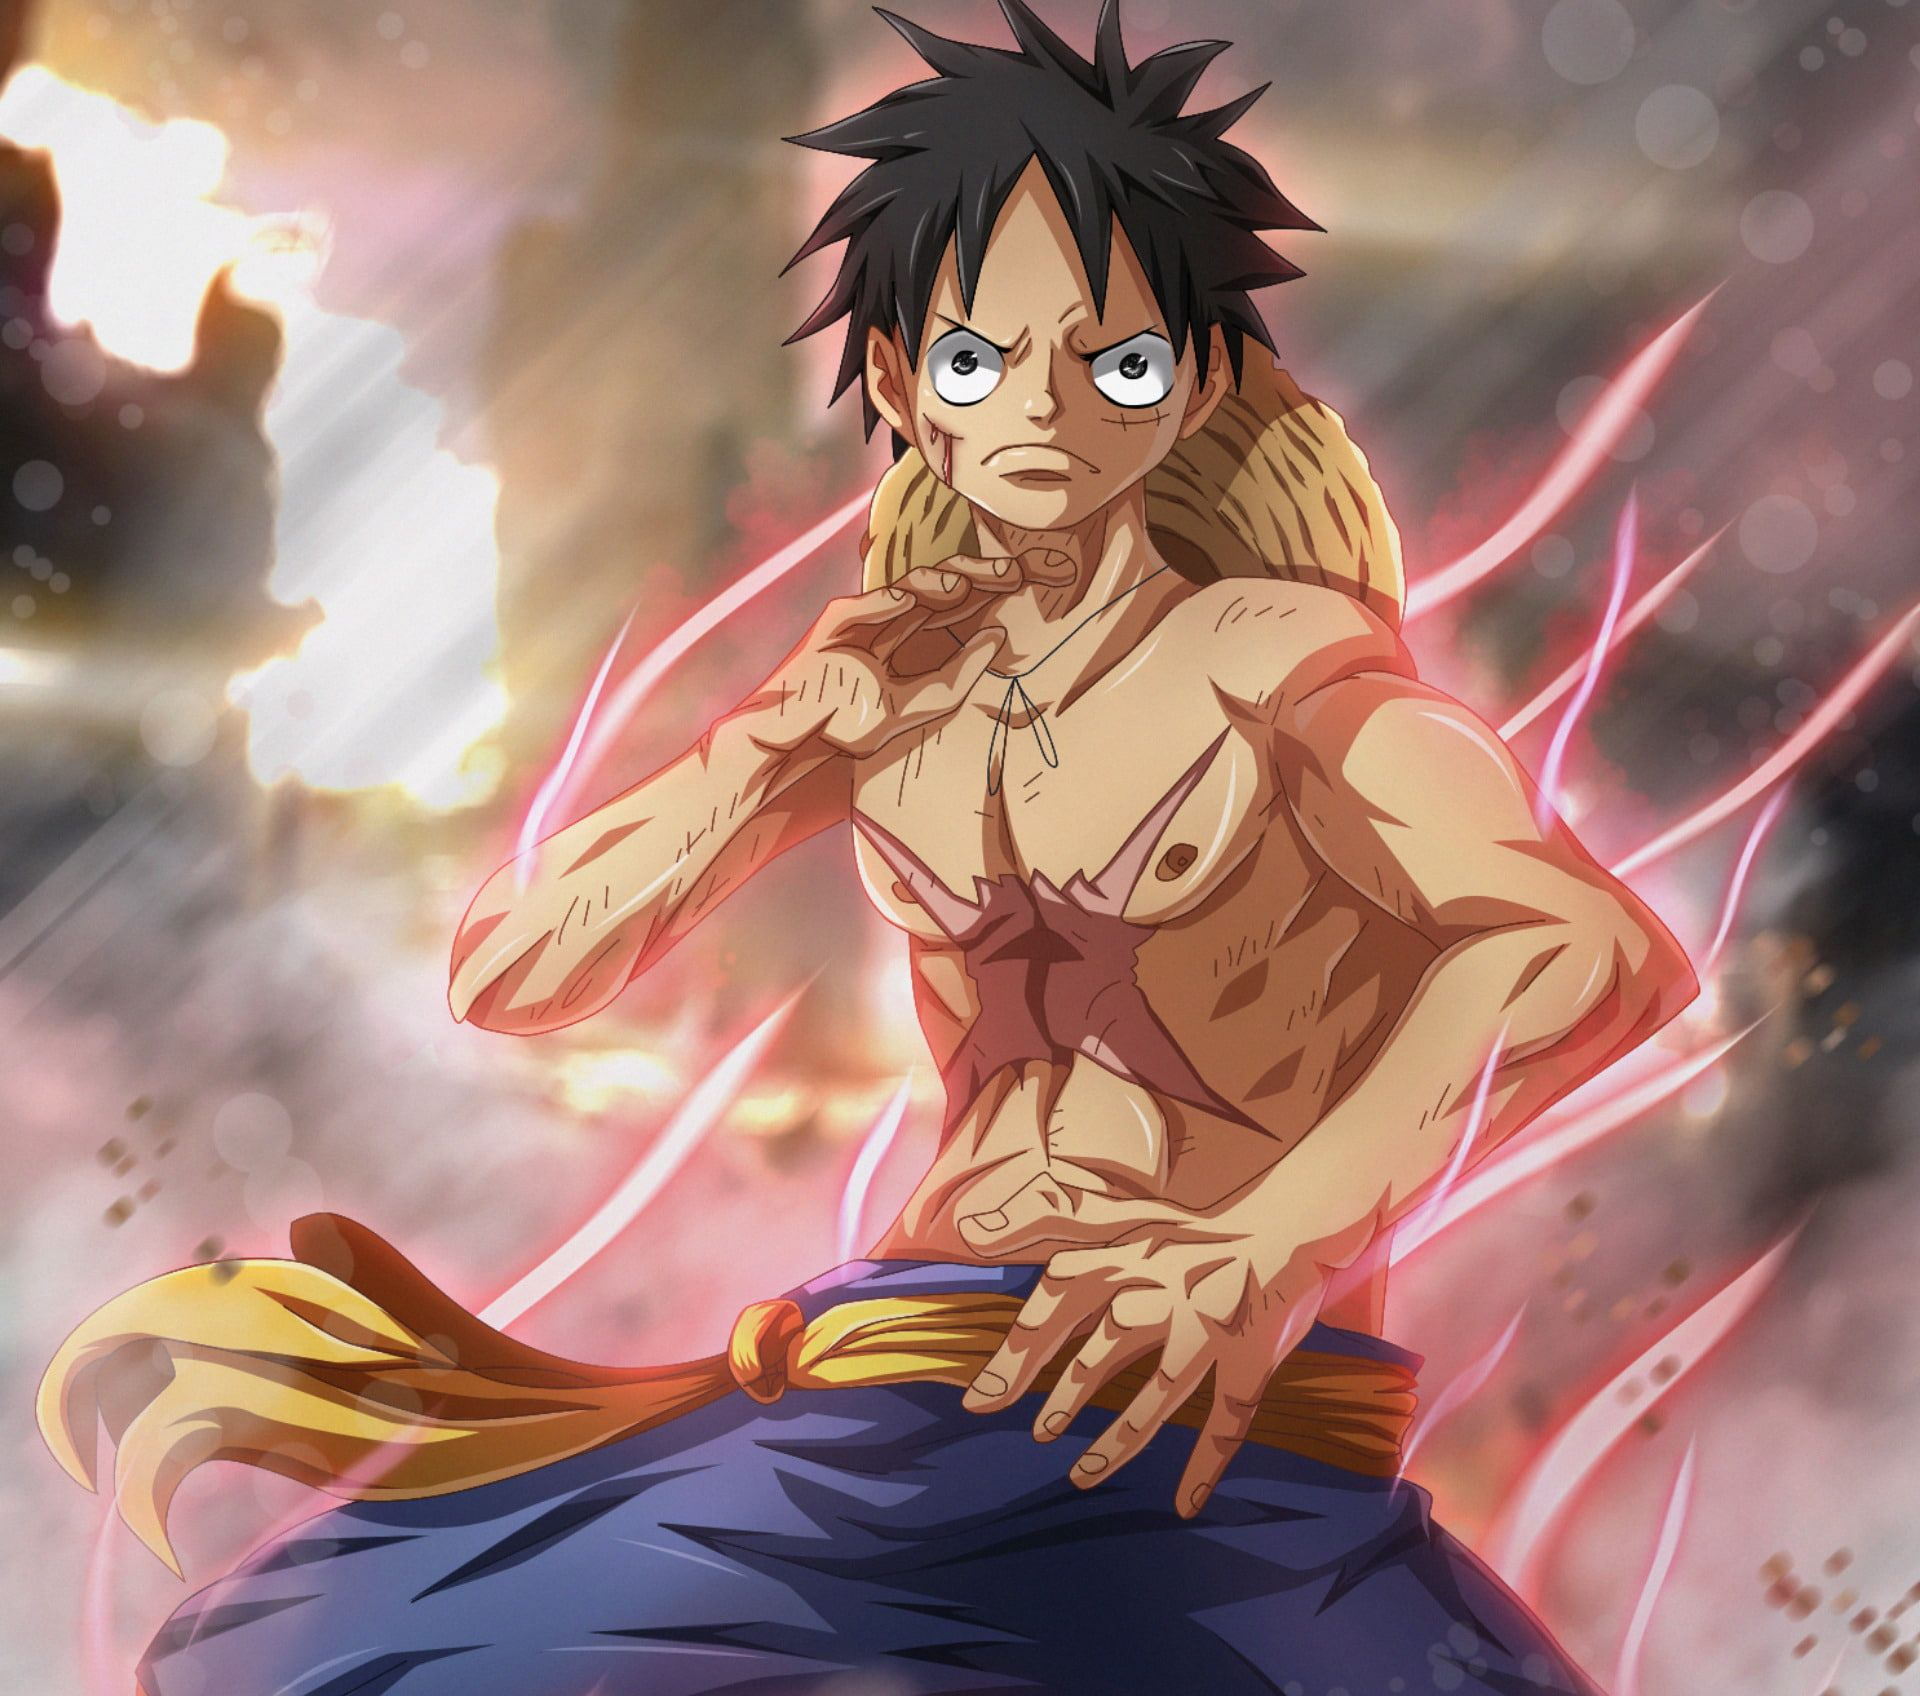 Anime One Piece Angry Black Eyes Black Hair Boy Monkey D Luffy Scar 1080p Wallpaper Hdwallpaper Desktop Anime Luffy One Piece Anime